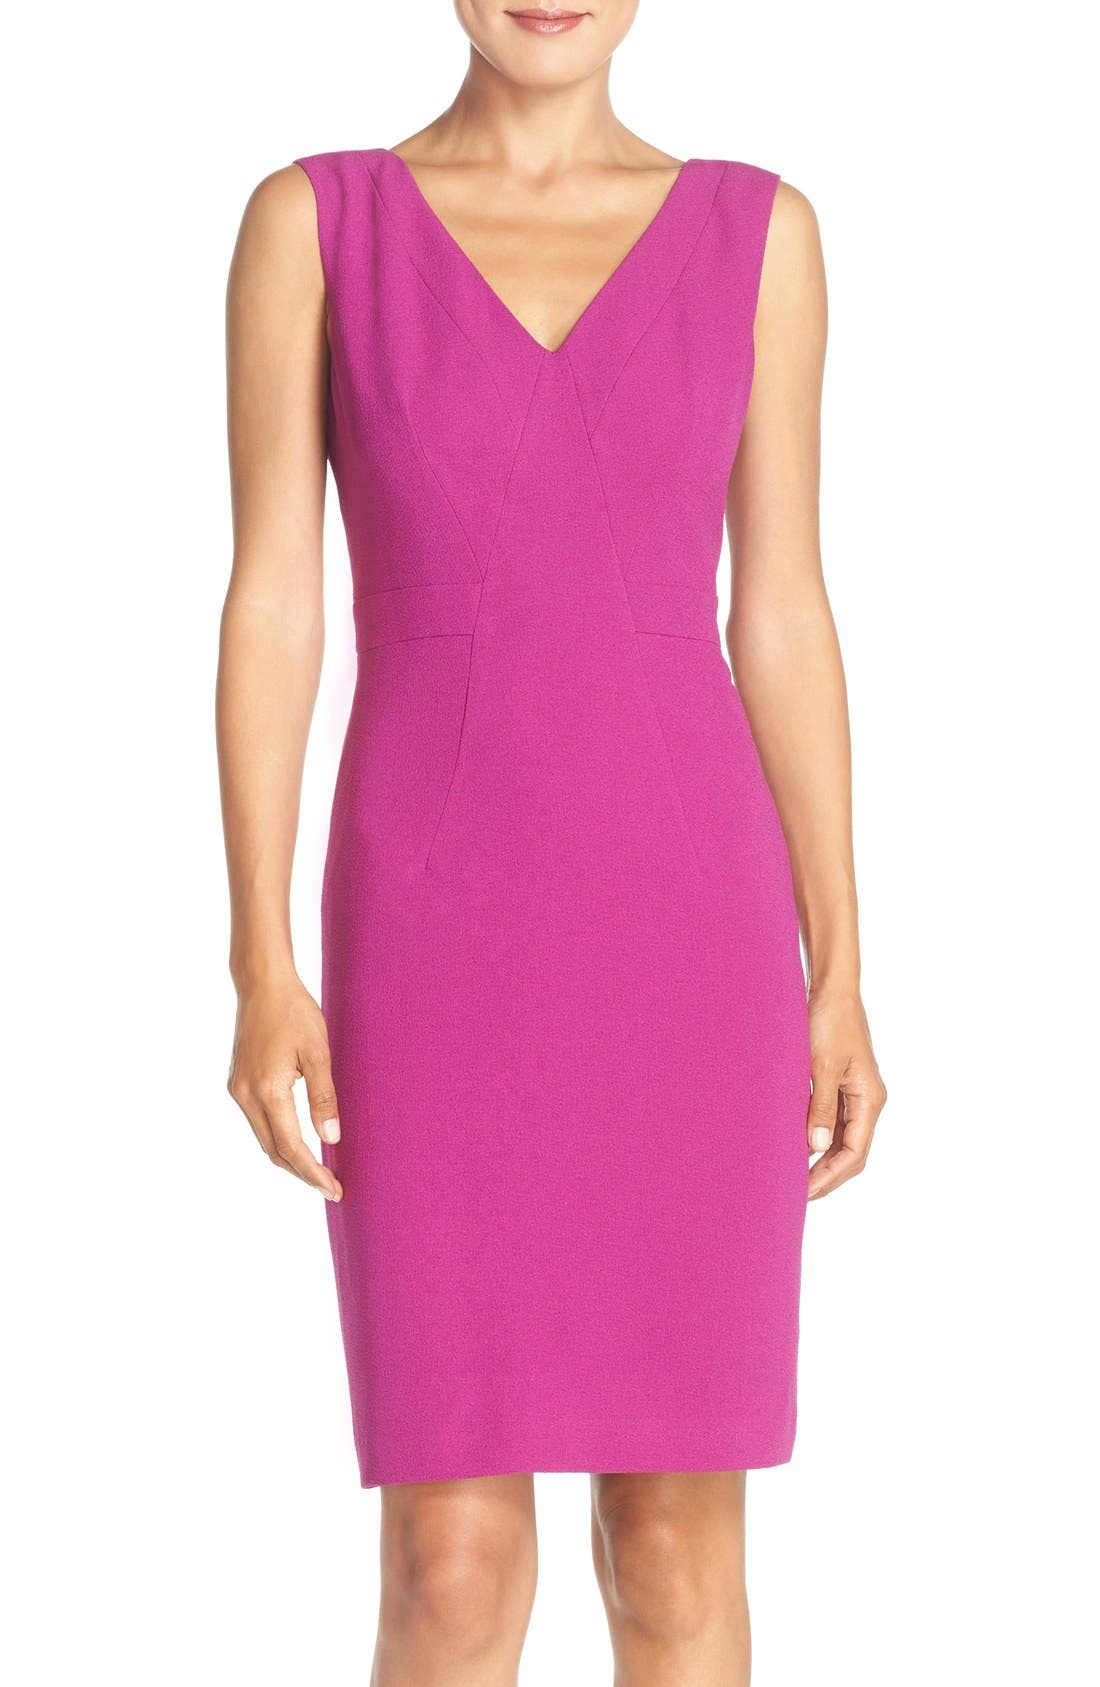 Adrianna Papell Seamed Woven Sheath Dress (Regular & Petite)